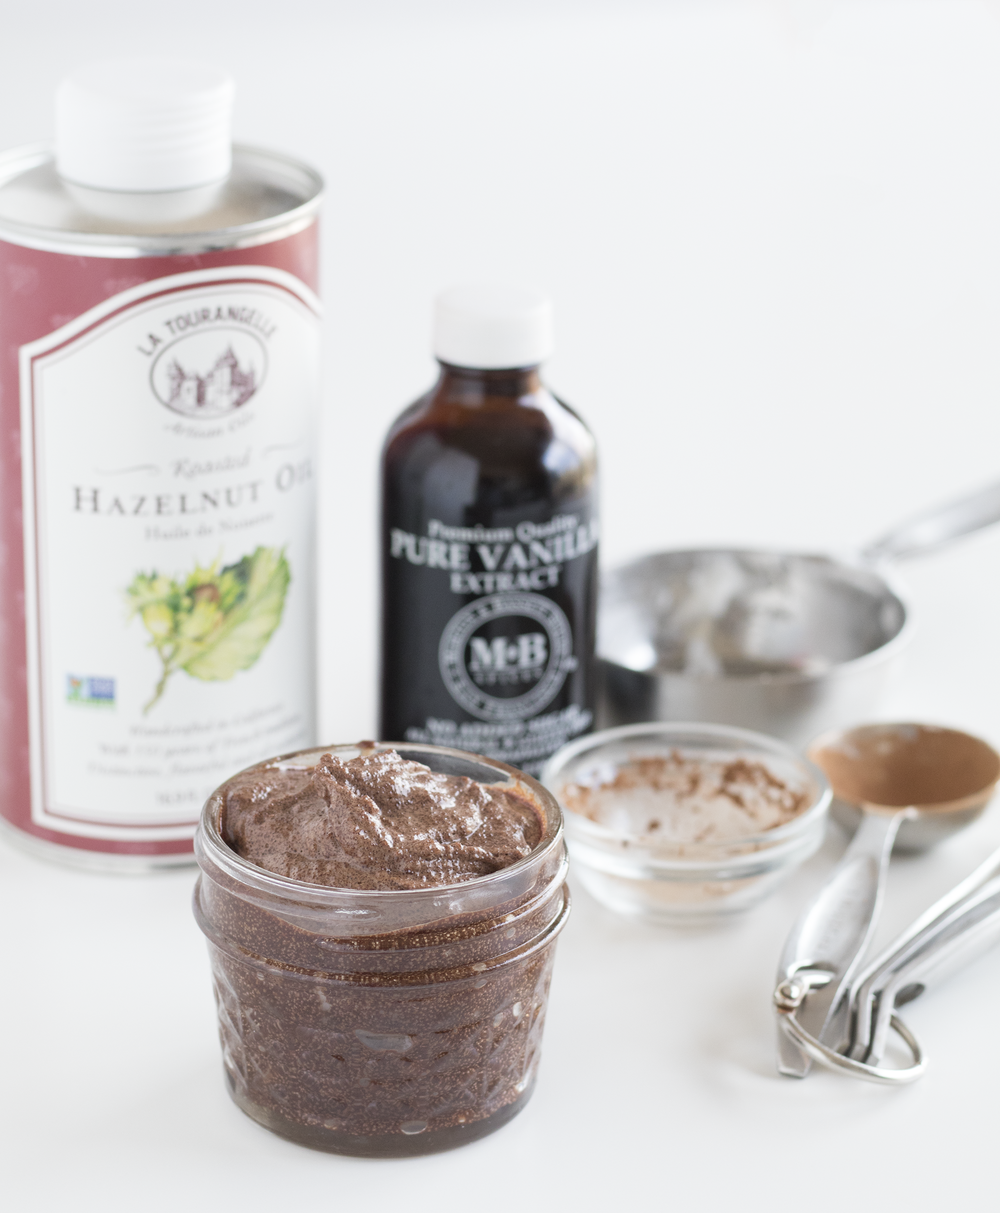 Cocoa Hazelnut Body Scrub | Sarah Makes Stuff